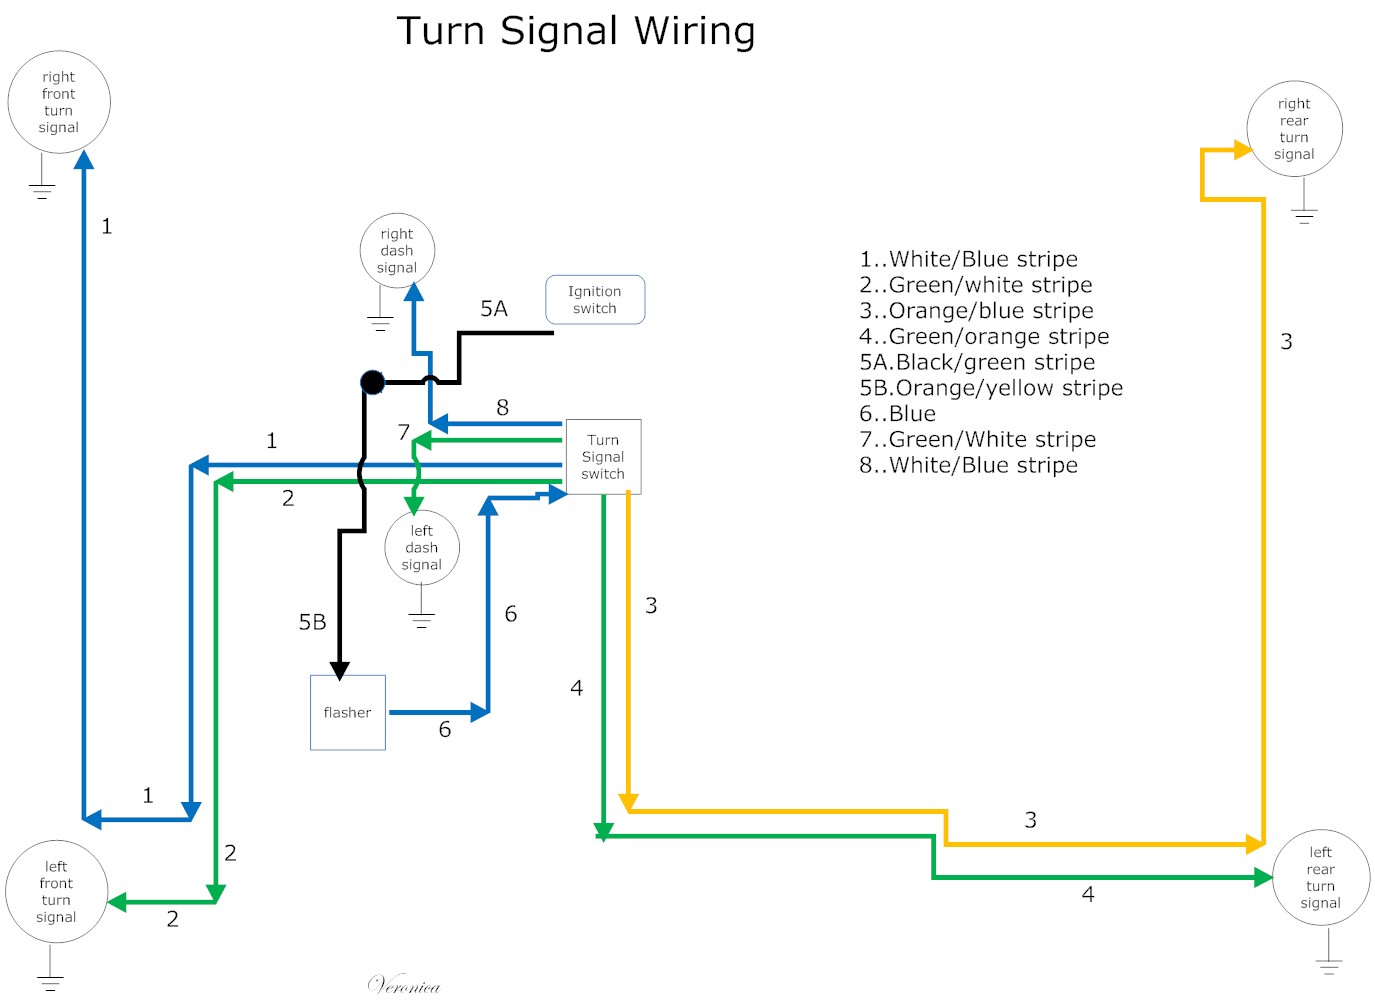 MT_6611] 3 Wire Switch Wiring Diagram 69 Mustang Download DiagramXtern Cali Rious Over Wigeg Mohammedshrine Librar Wiring 101